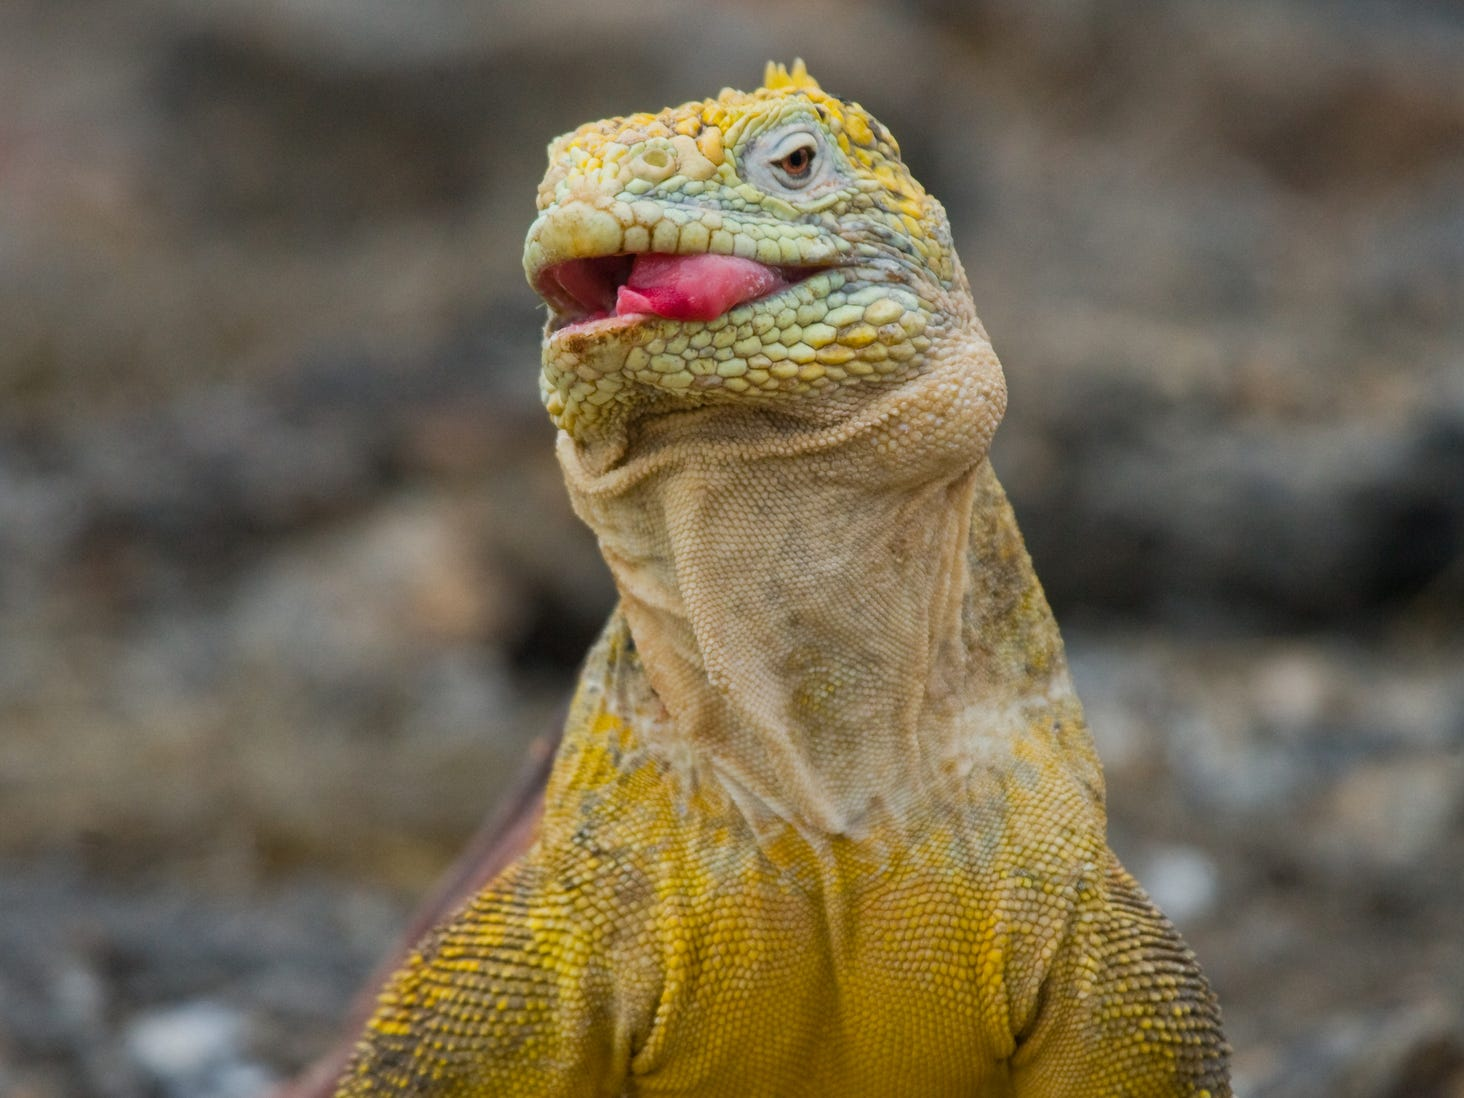 A land iguana in the Galapagos Islands, Ecuador.